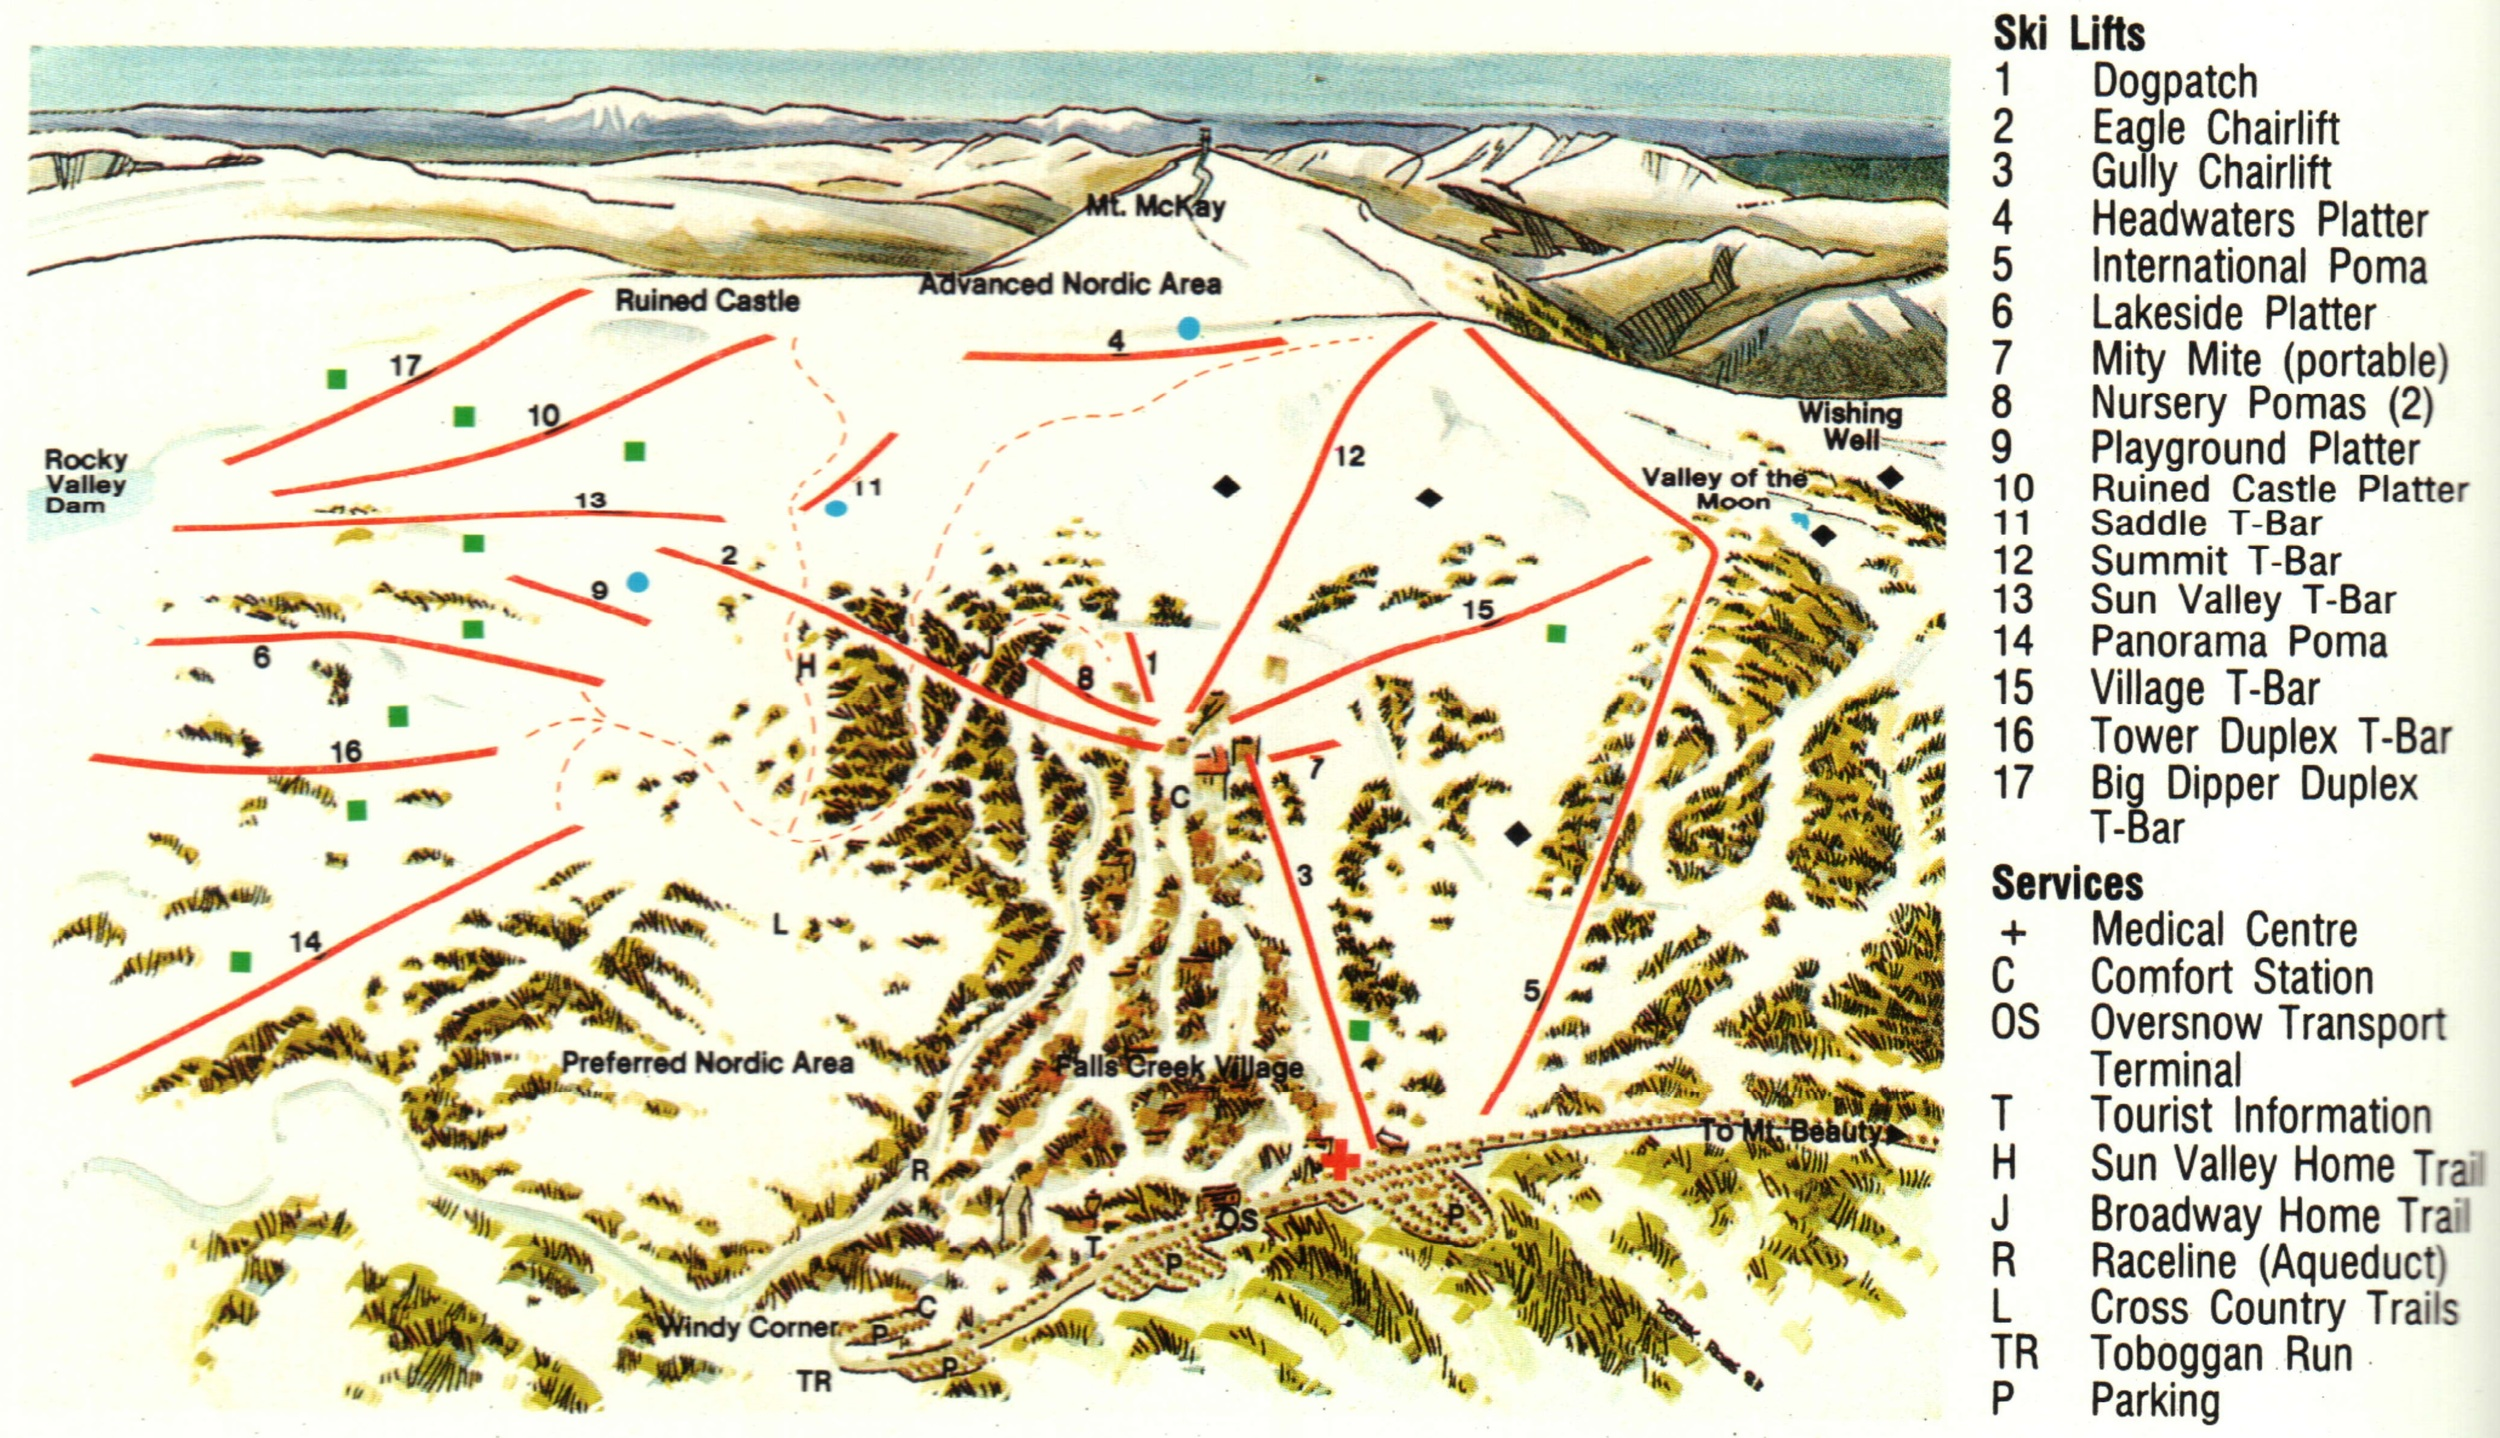 Ski Resort Maps Australian Mountains